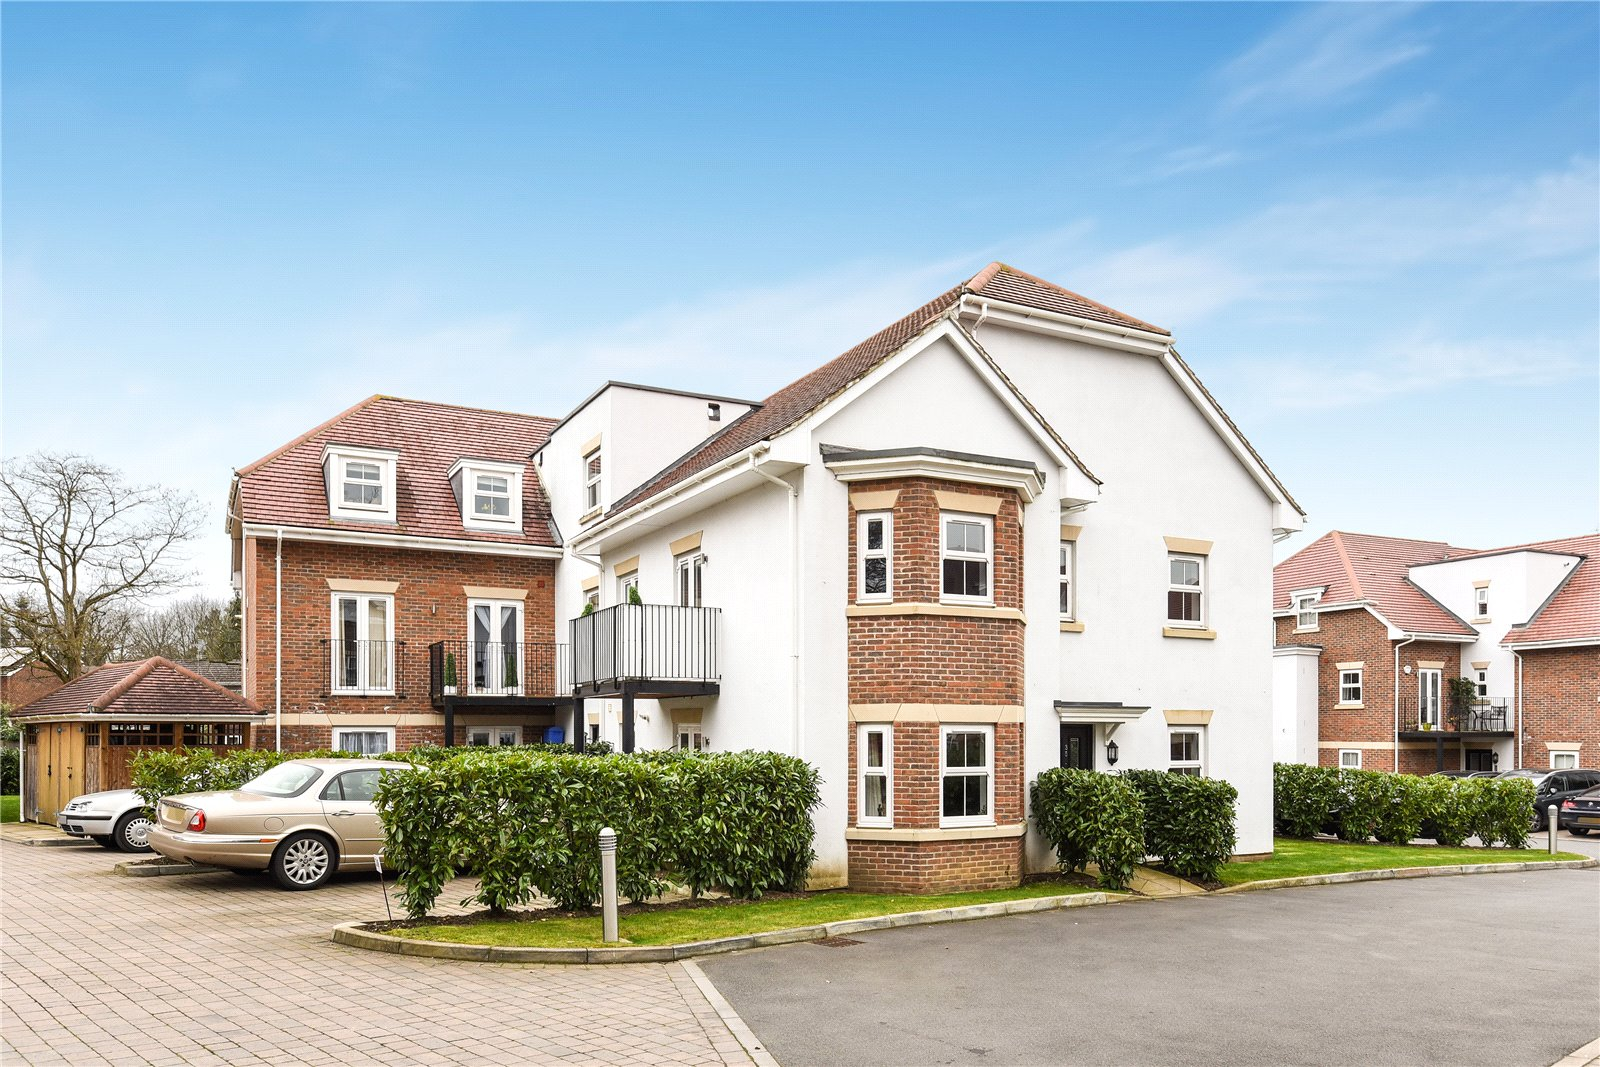 2 Bedrooms Apartment Flat for sale in Wiltshire Place, Wiltshire Road, Wokingham, Berkshire, RG40